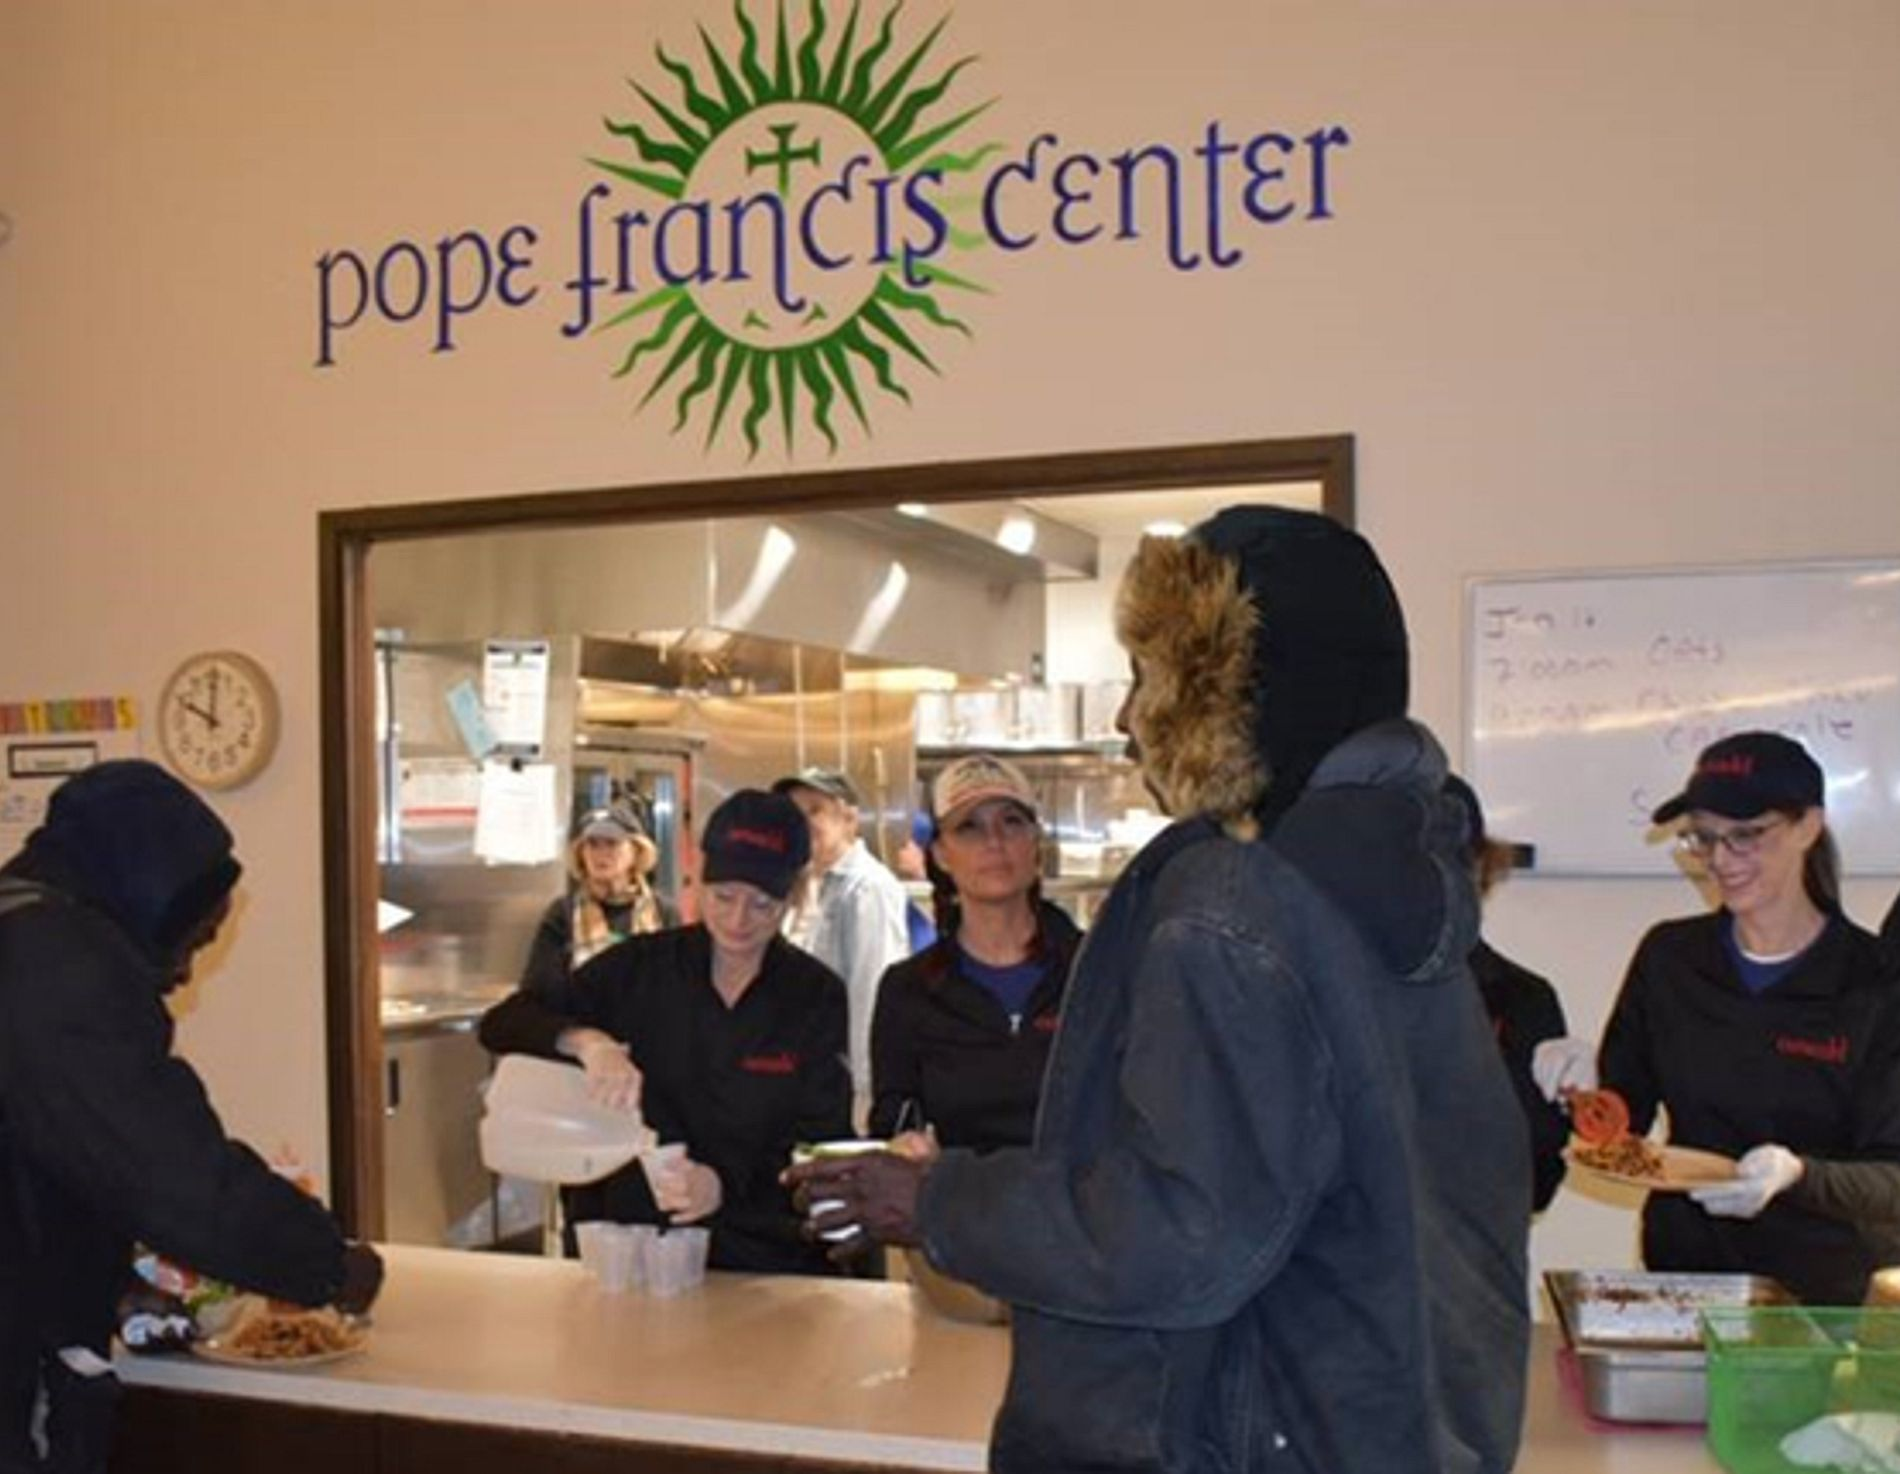 People helping at the Pope Francis Center